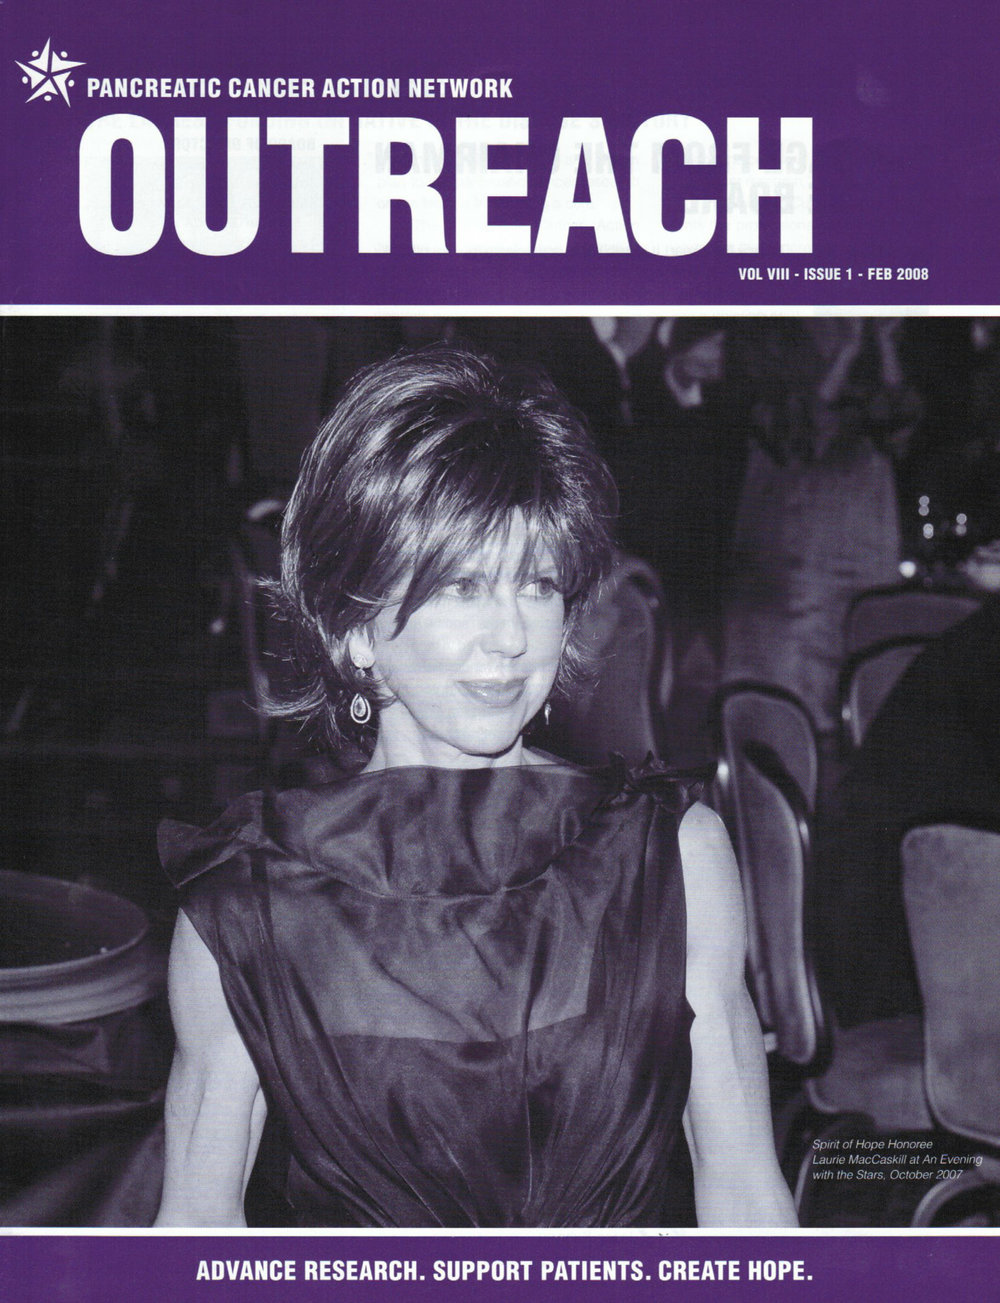 Laurie MacCaskill Featured in February 2013 Issue of PanCan Outreach Magazine